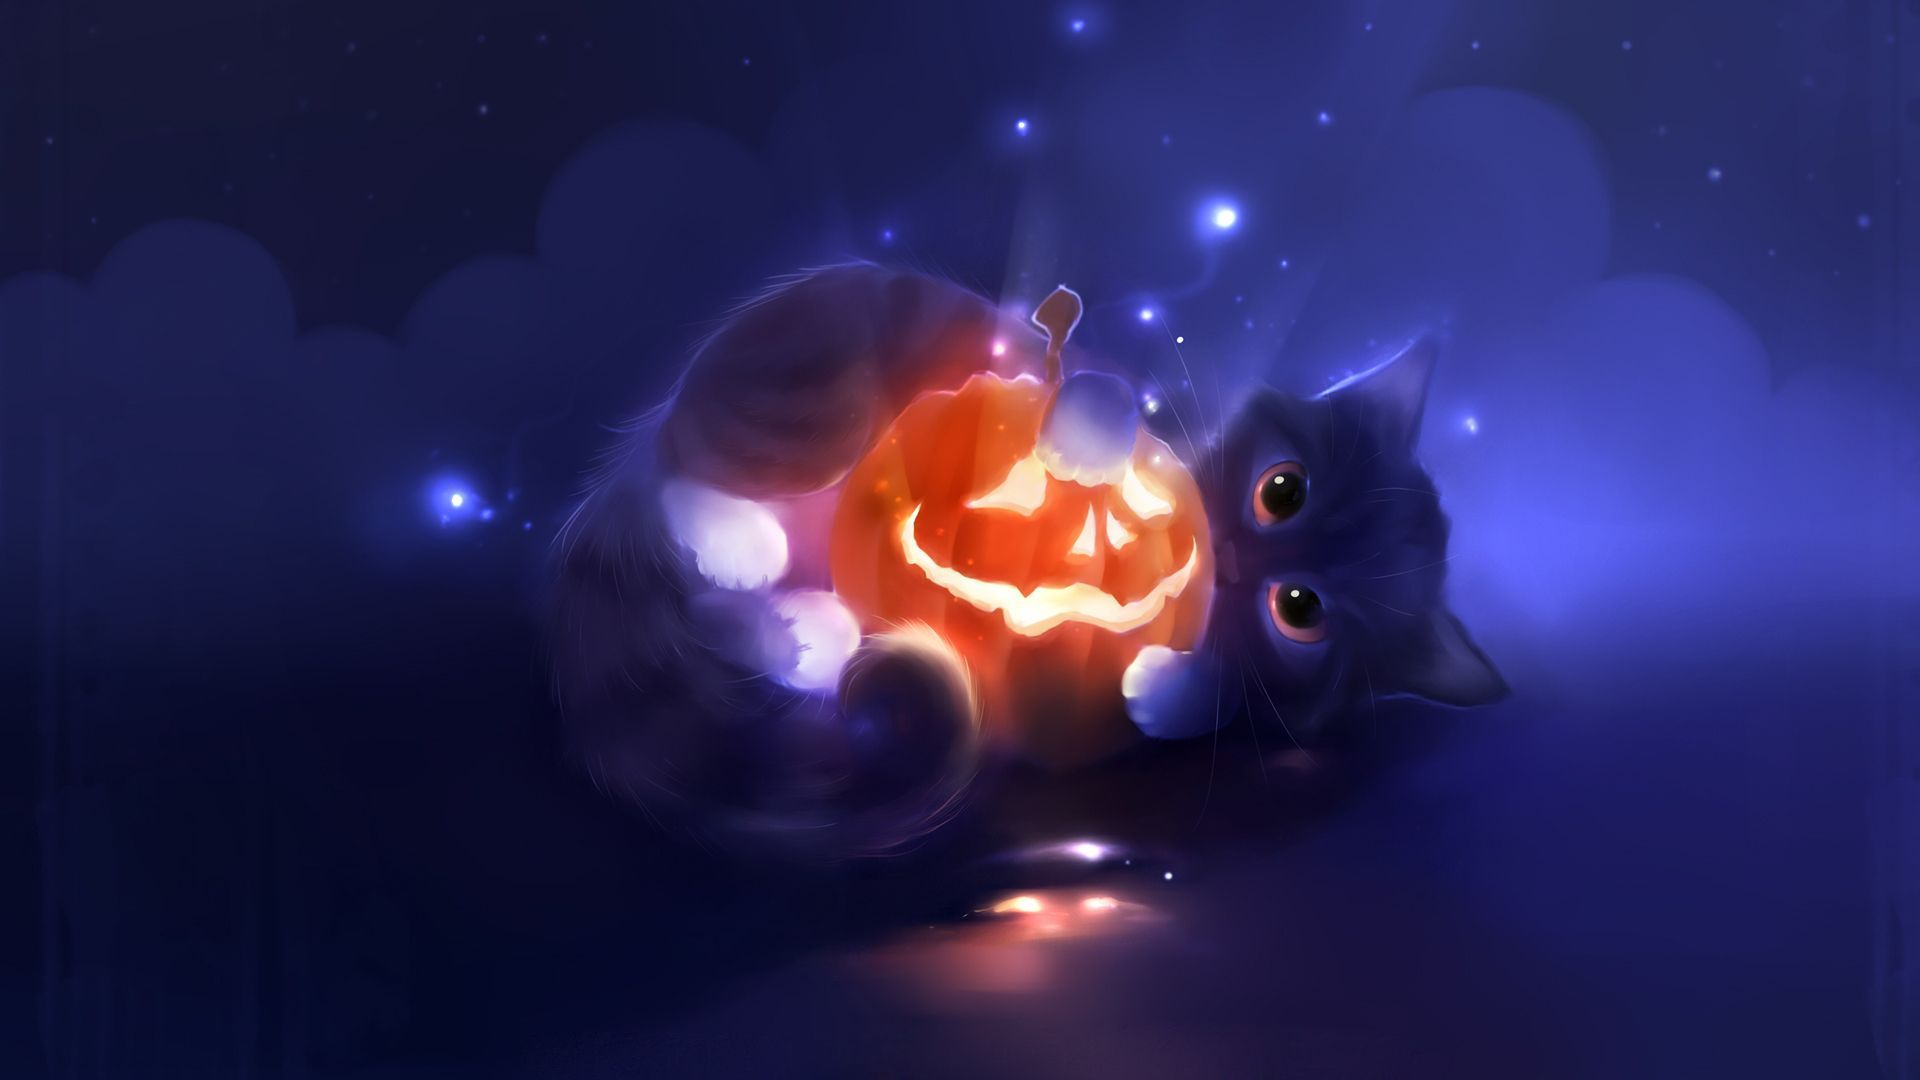 Free Cute Halloween Wallpapers - Wallpaper Cave